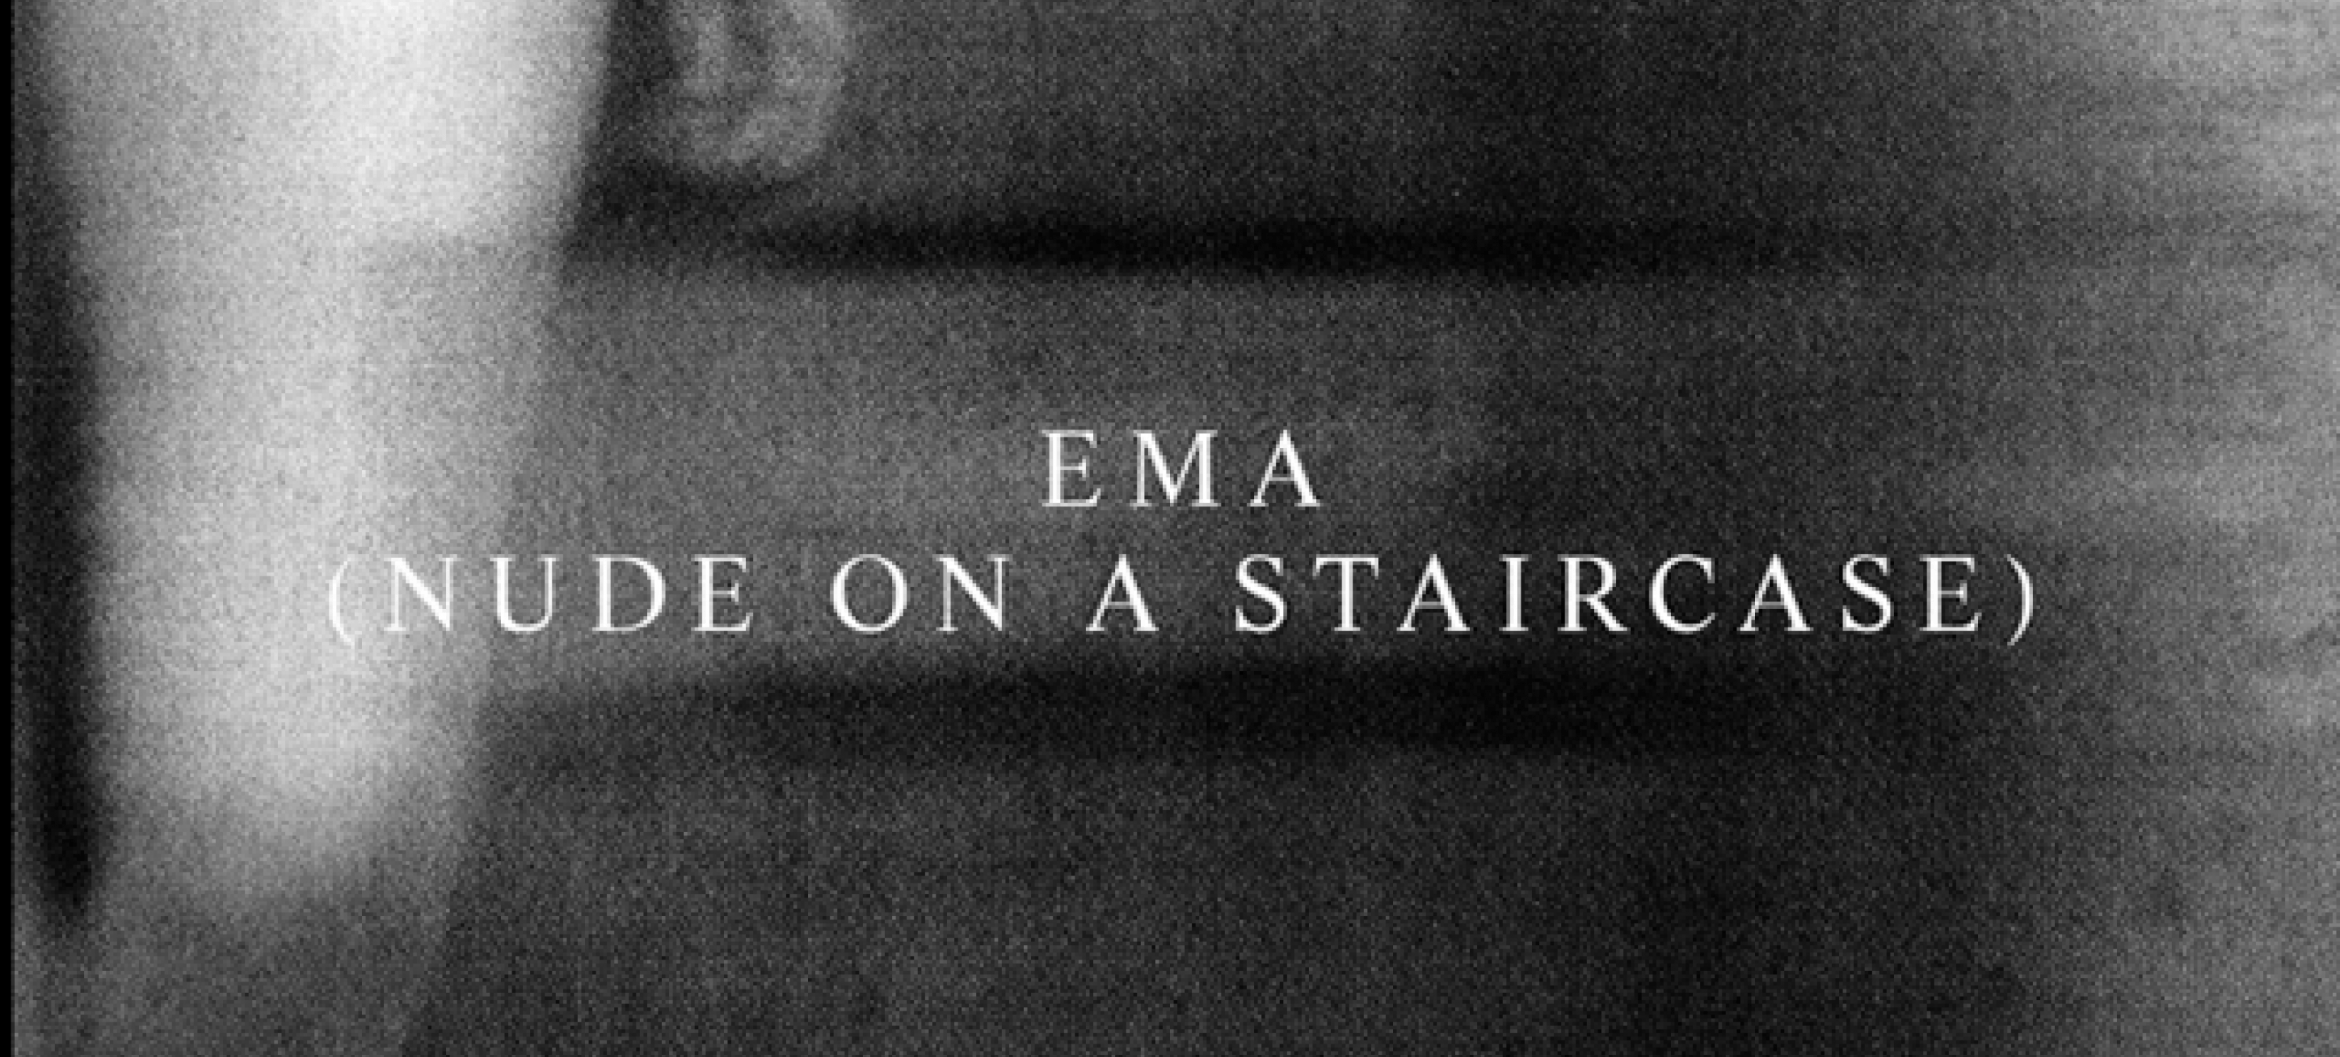 Publication: Ema (Nude on a staircase)